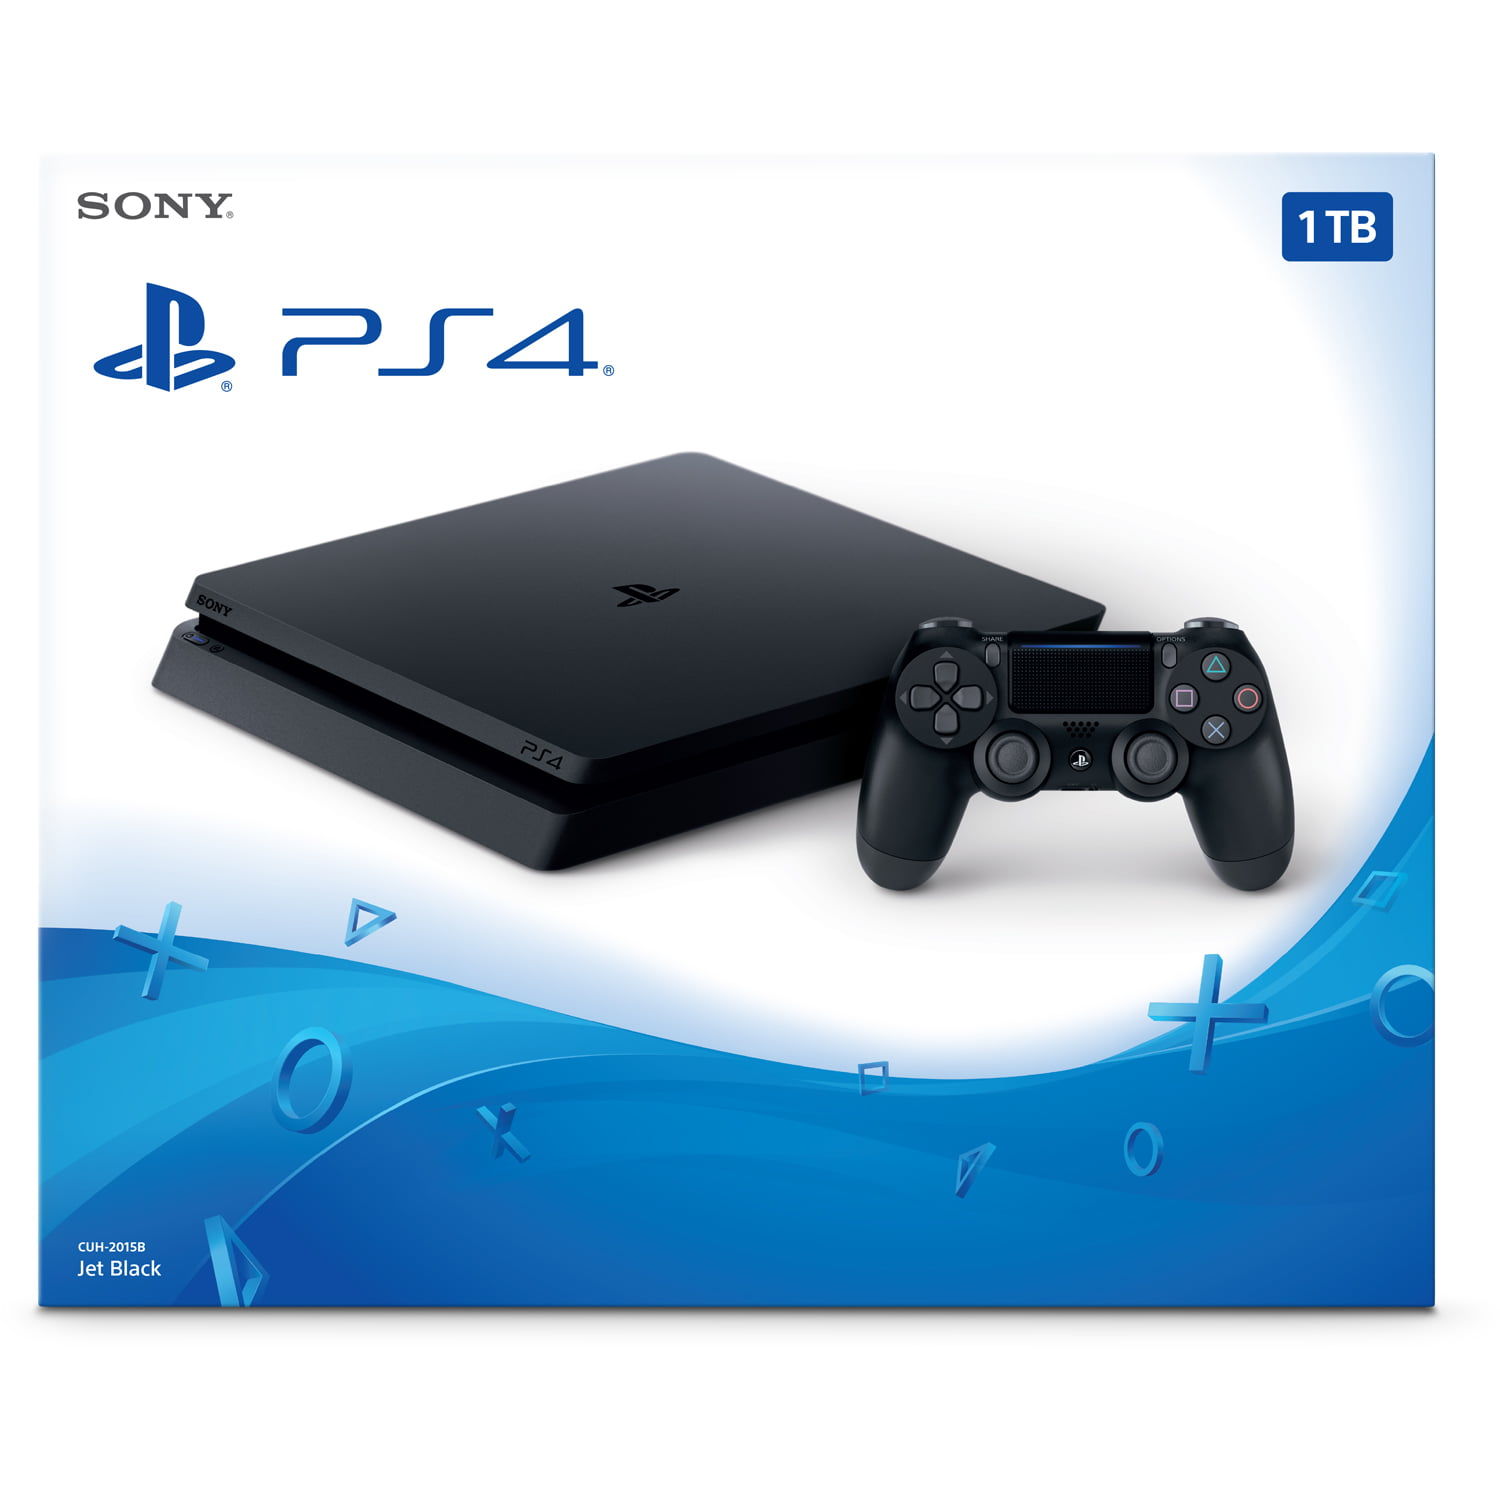 Sony PlayStation 4 1TB Slim Gaming Console, CUH-2215BB01 - Walmart com